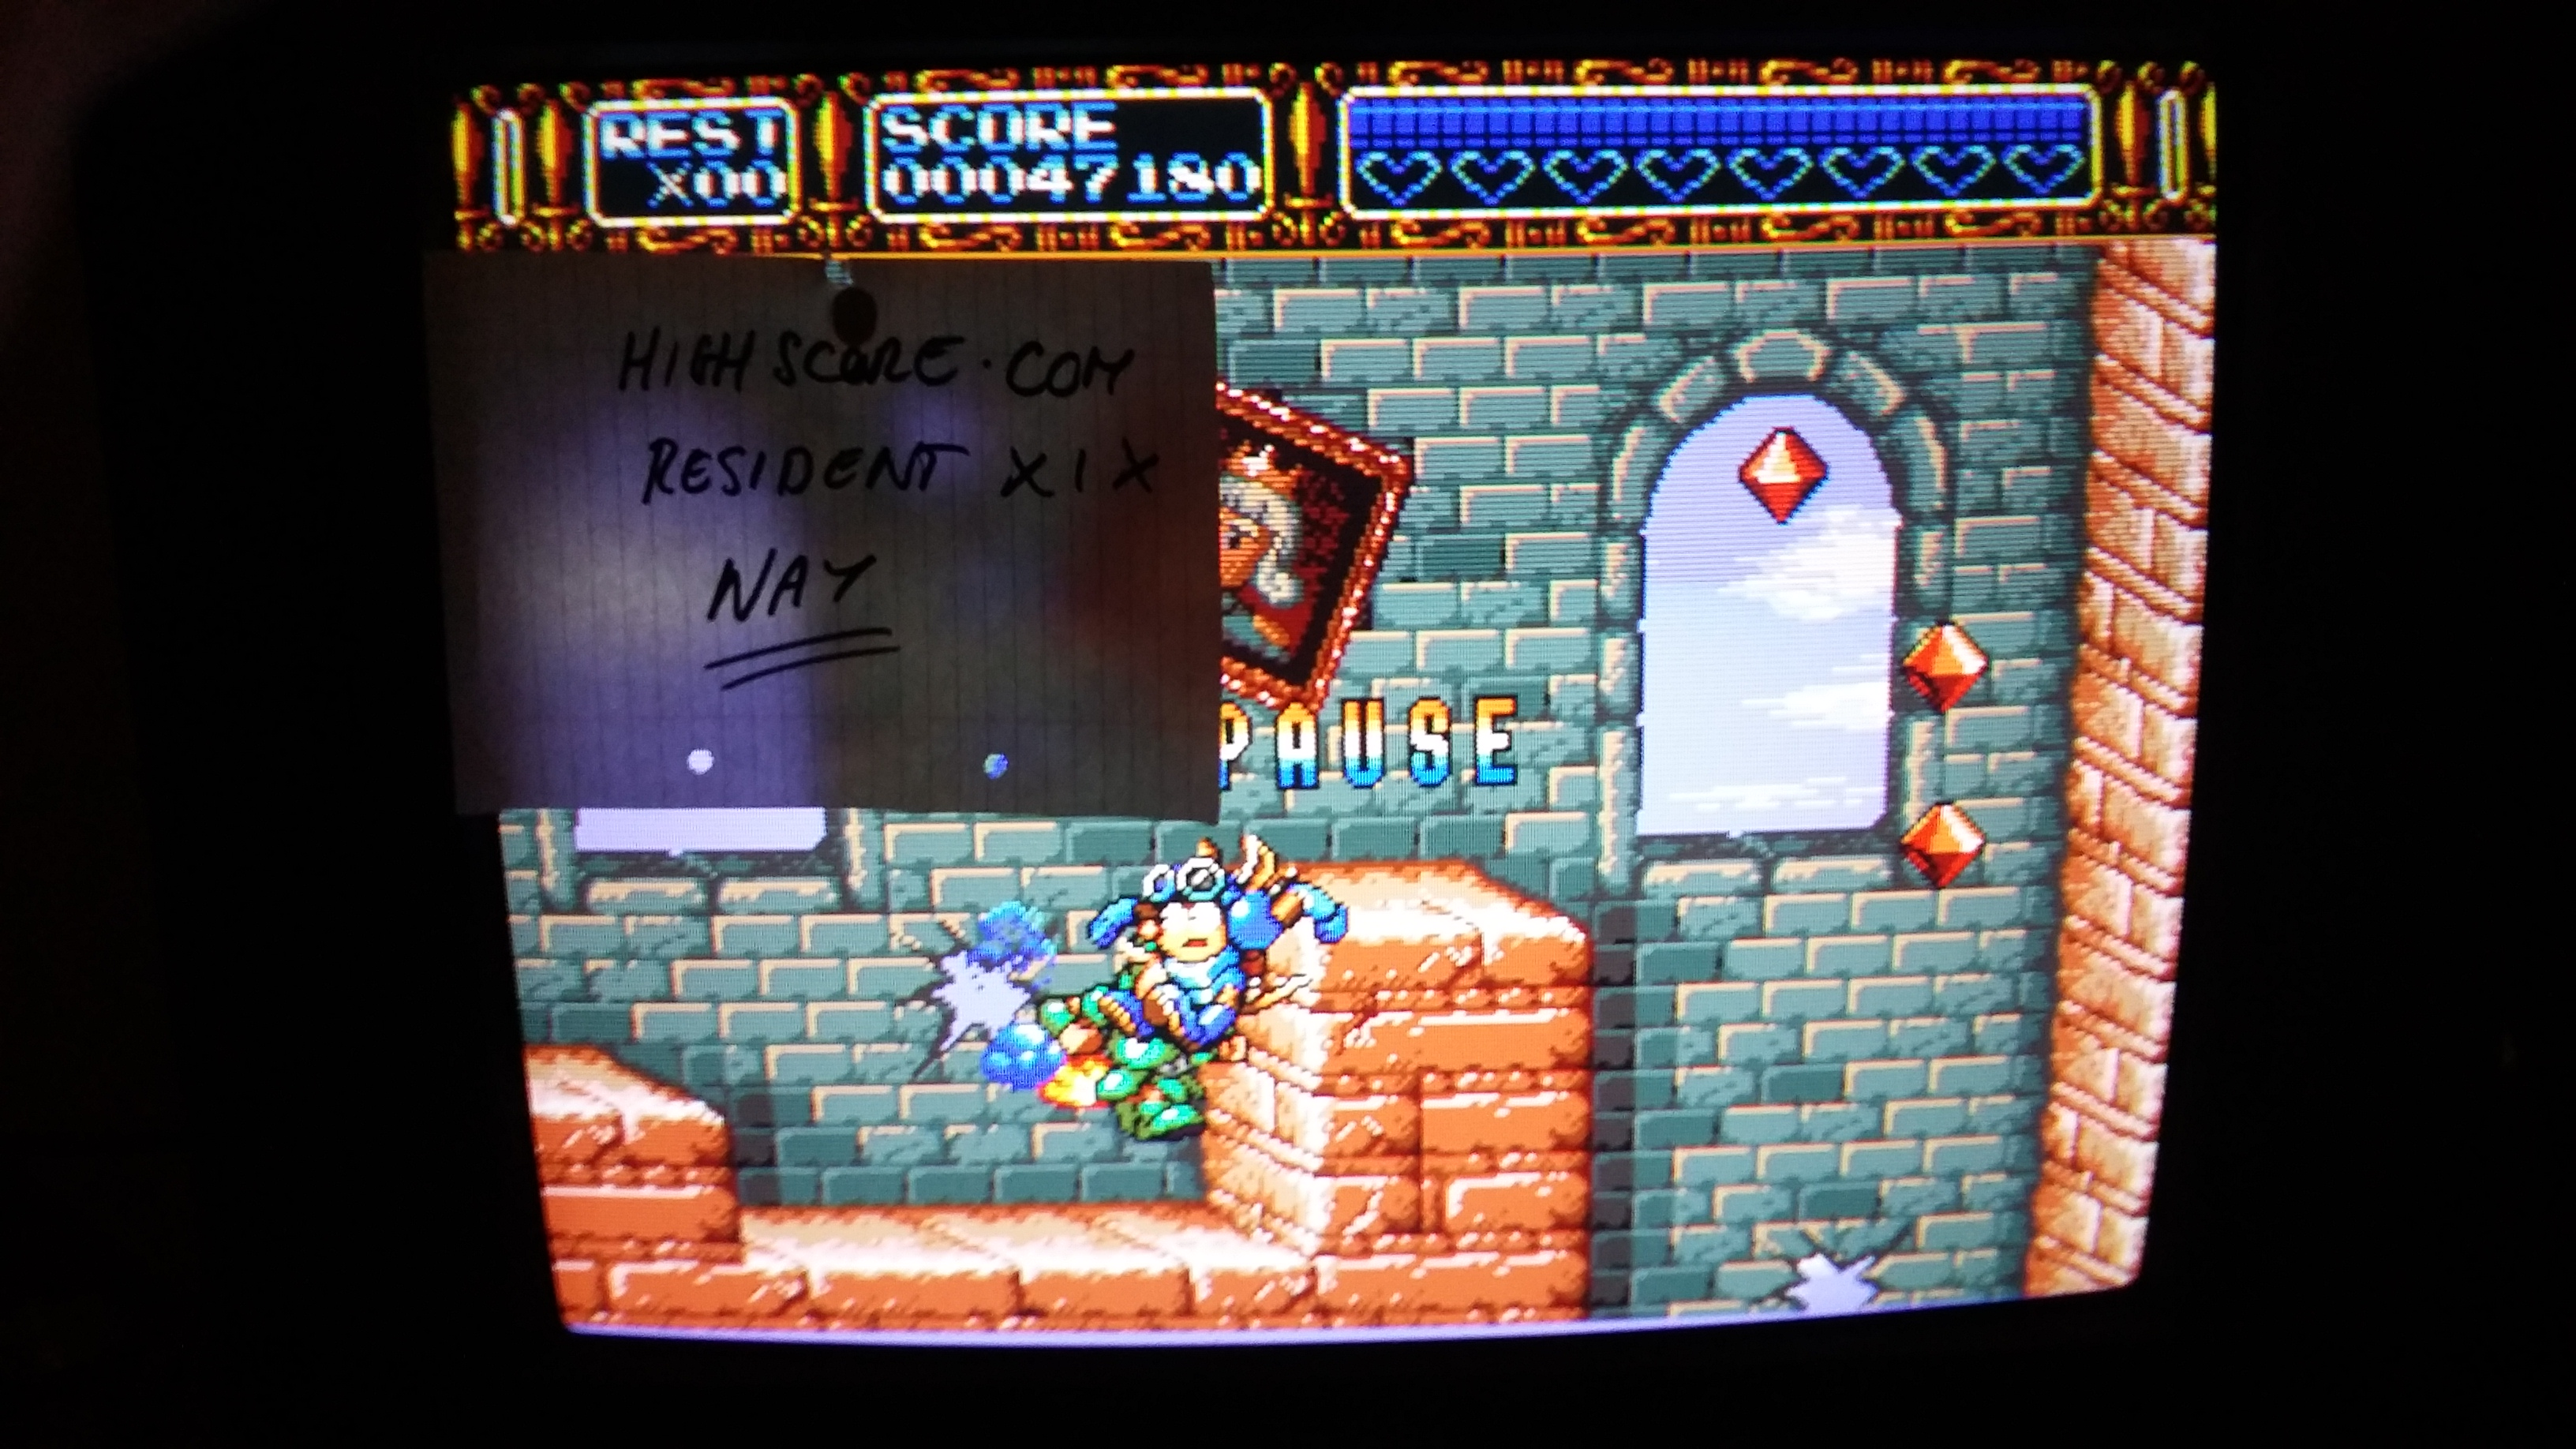 ResidentX1X: Rocket Knight Adventures [Hard] (Sega Genesis / MegaDrive) 47,180 points on 2019-03-06 12:30:22